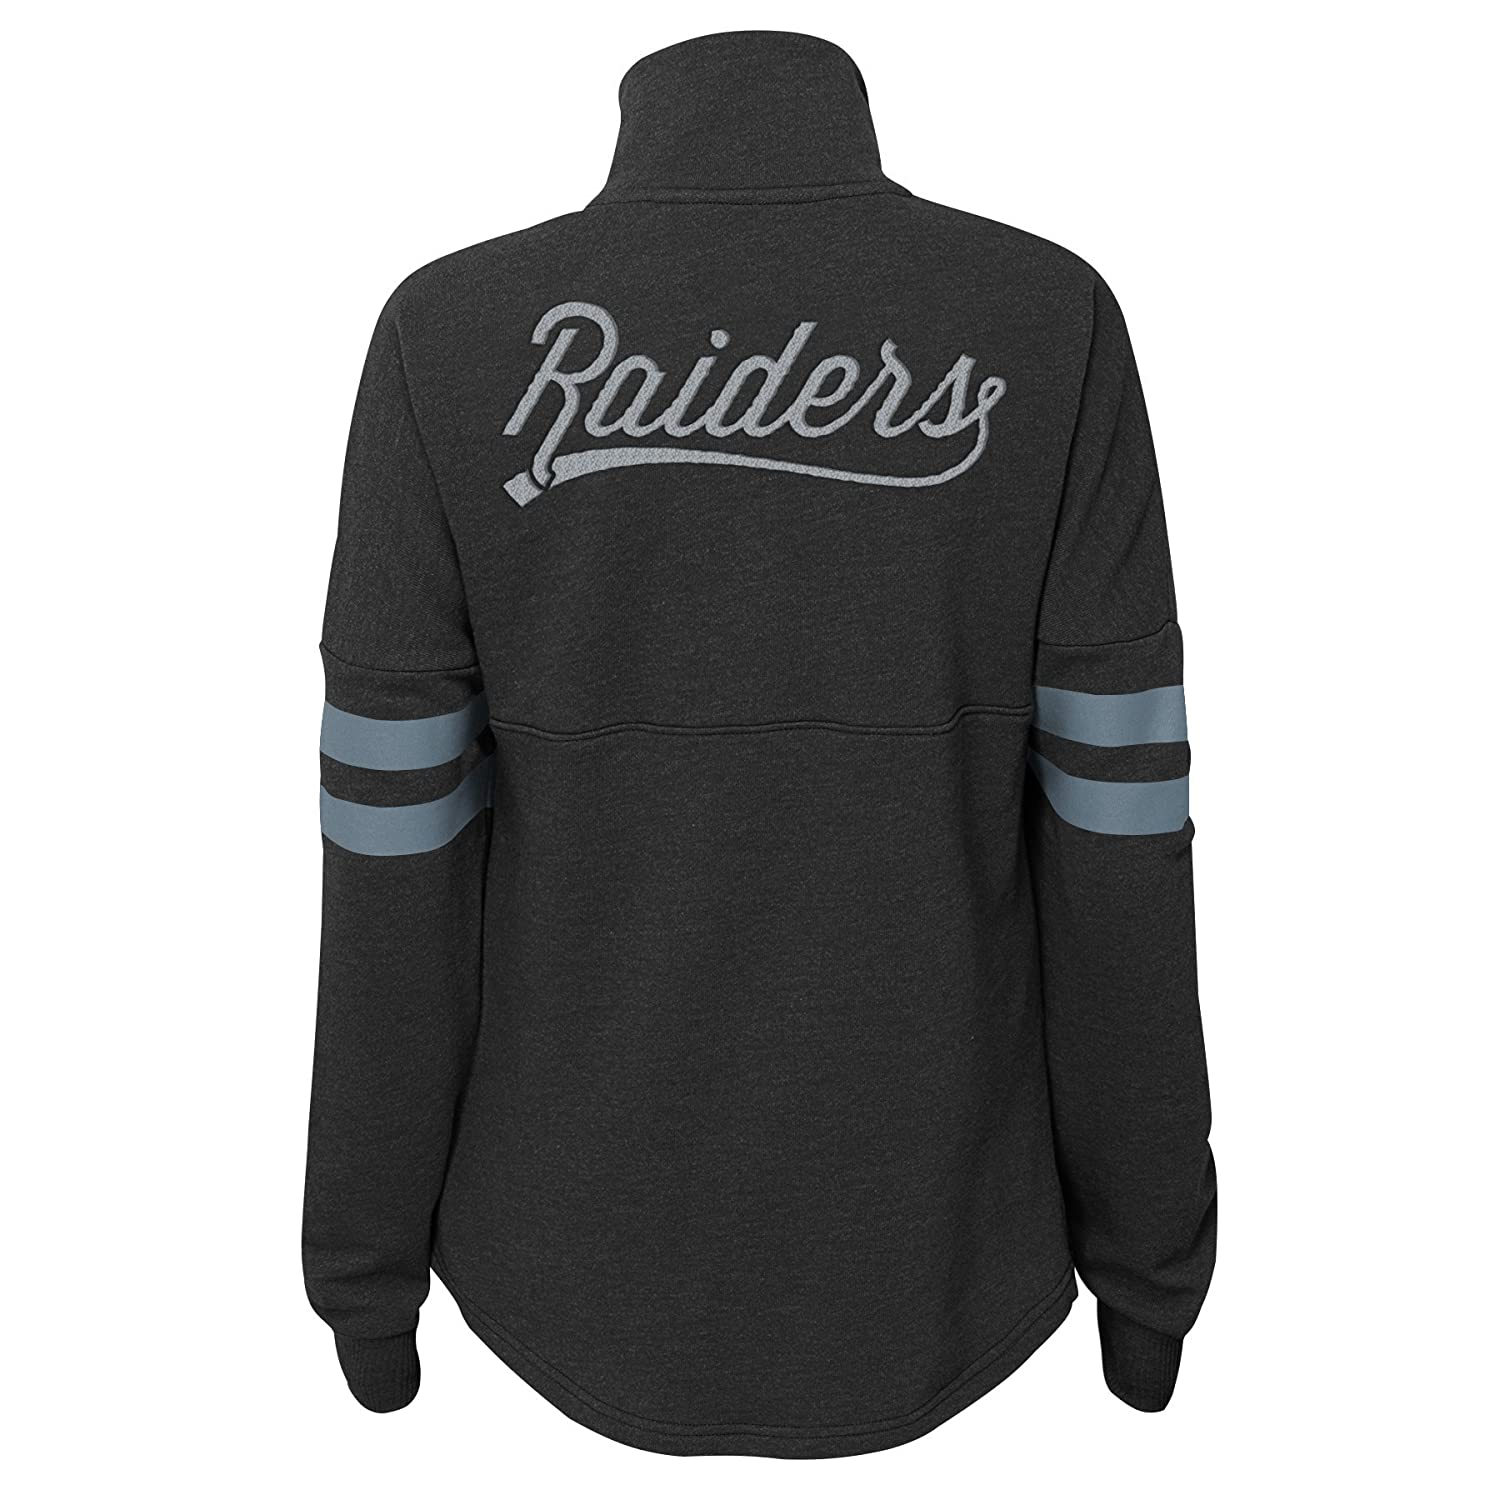 0-1 Outerstuff NFL NFL Oakland Raiders Juniors Classic Throw Varsity 1//4 Snap Pullover Top Black Juniors X-Small